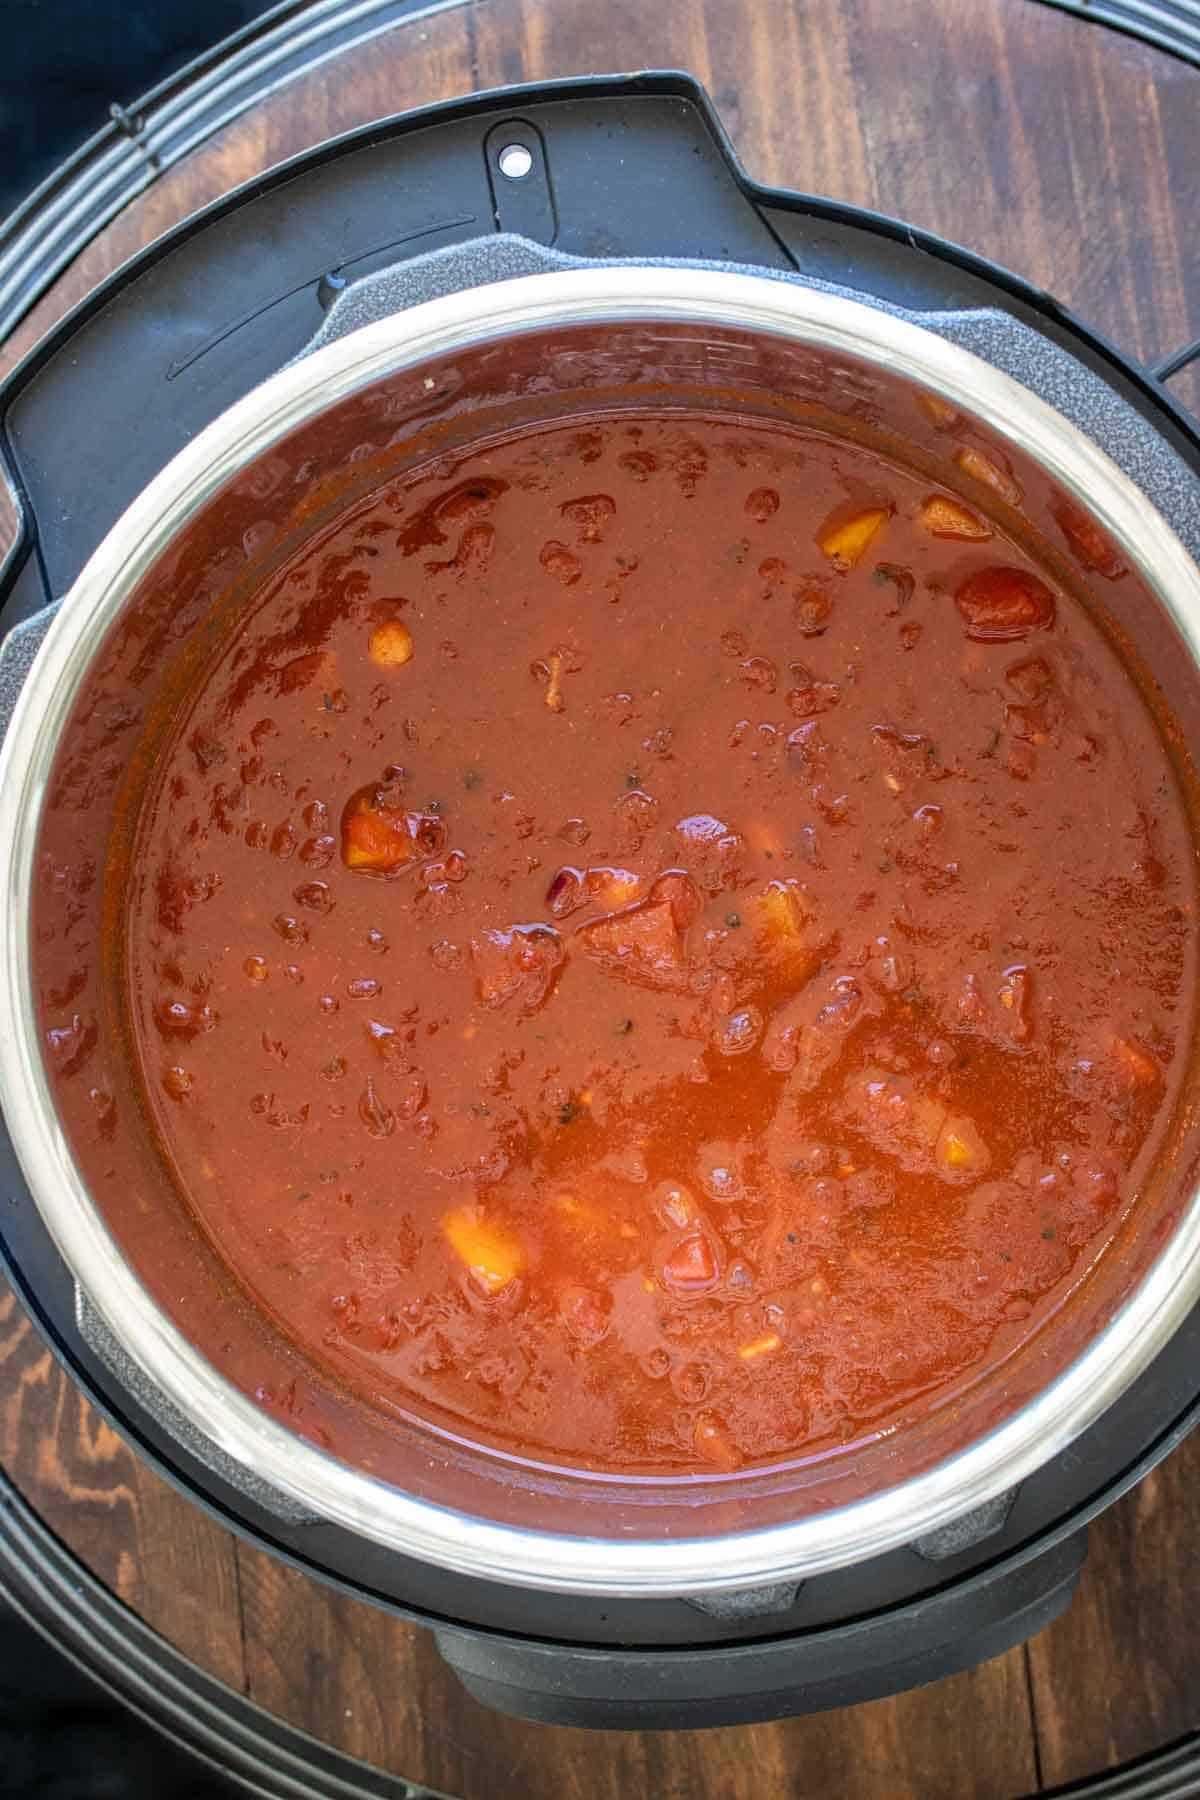 Slow cooker with bean chili ingredients inside